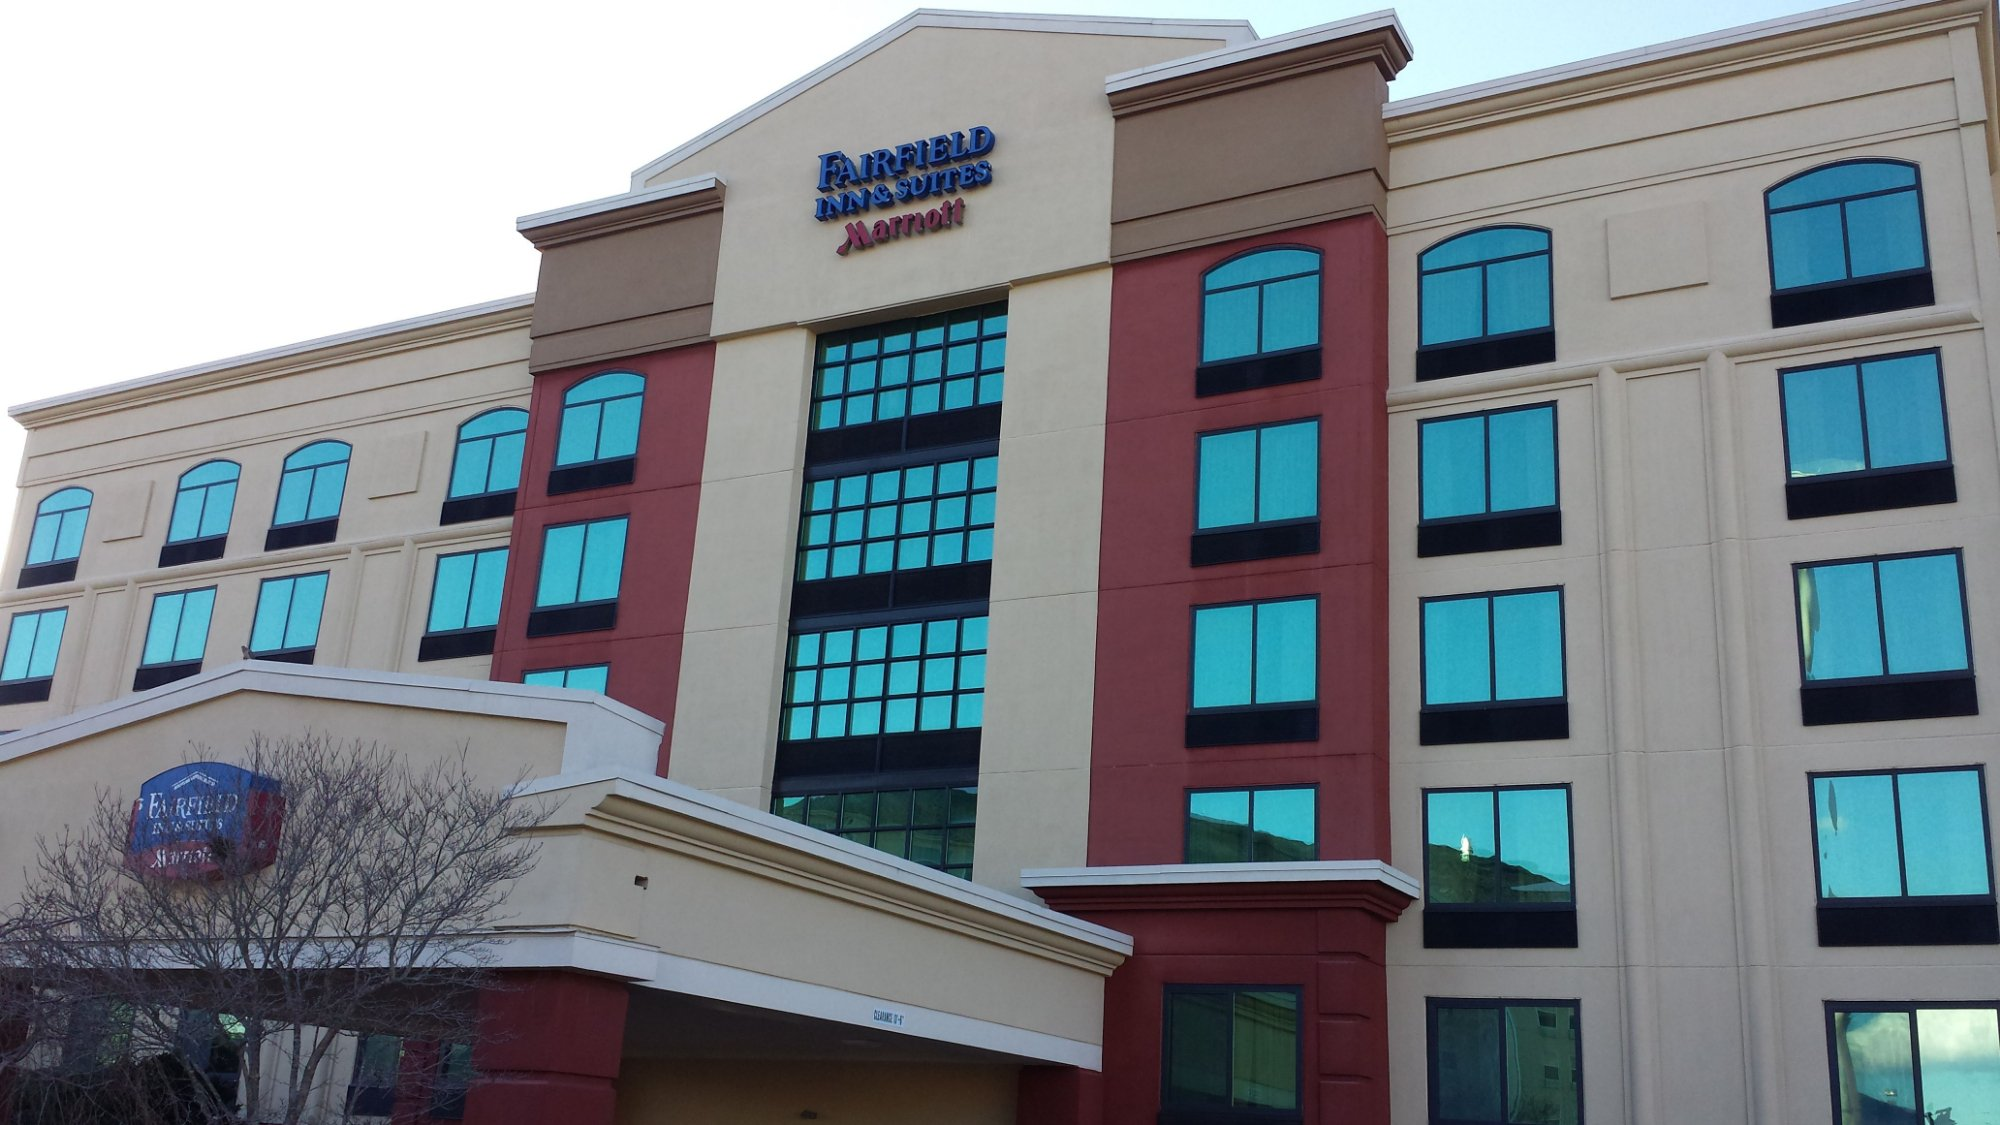 Fairfield Inn & Suites Asheville South/Biltmore Square